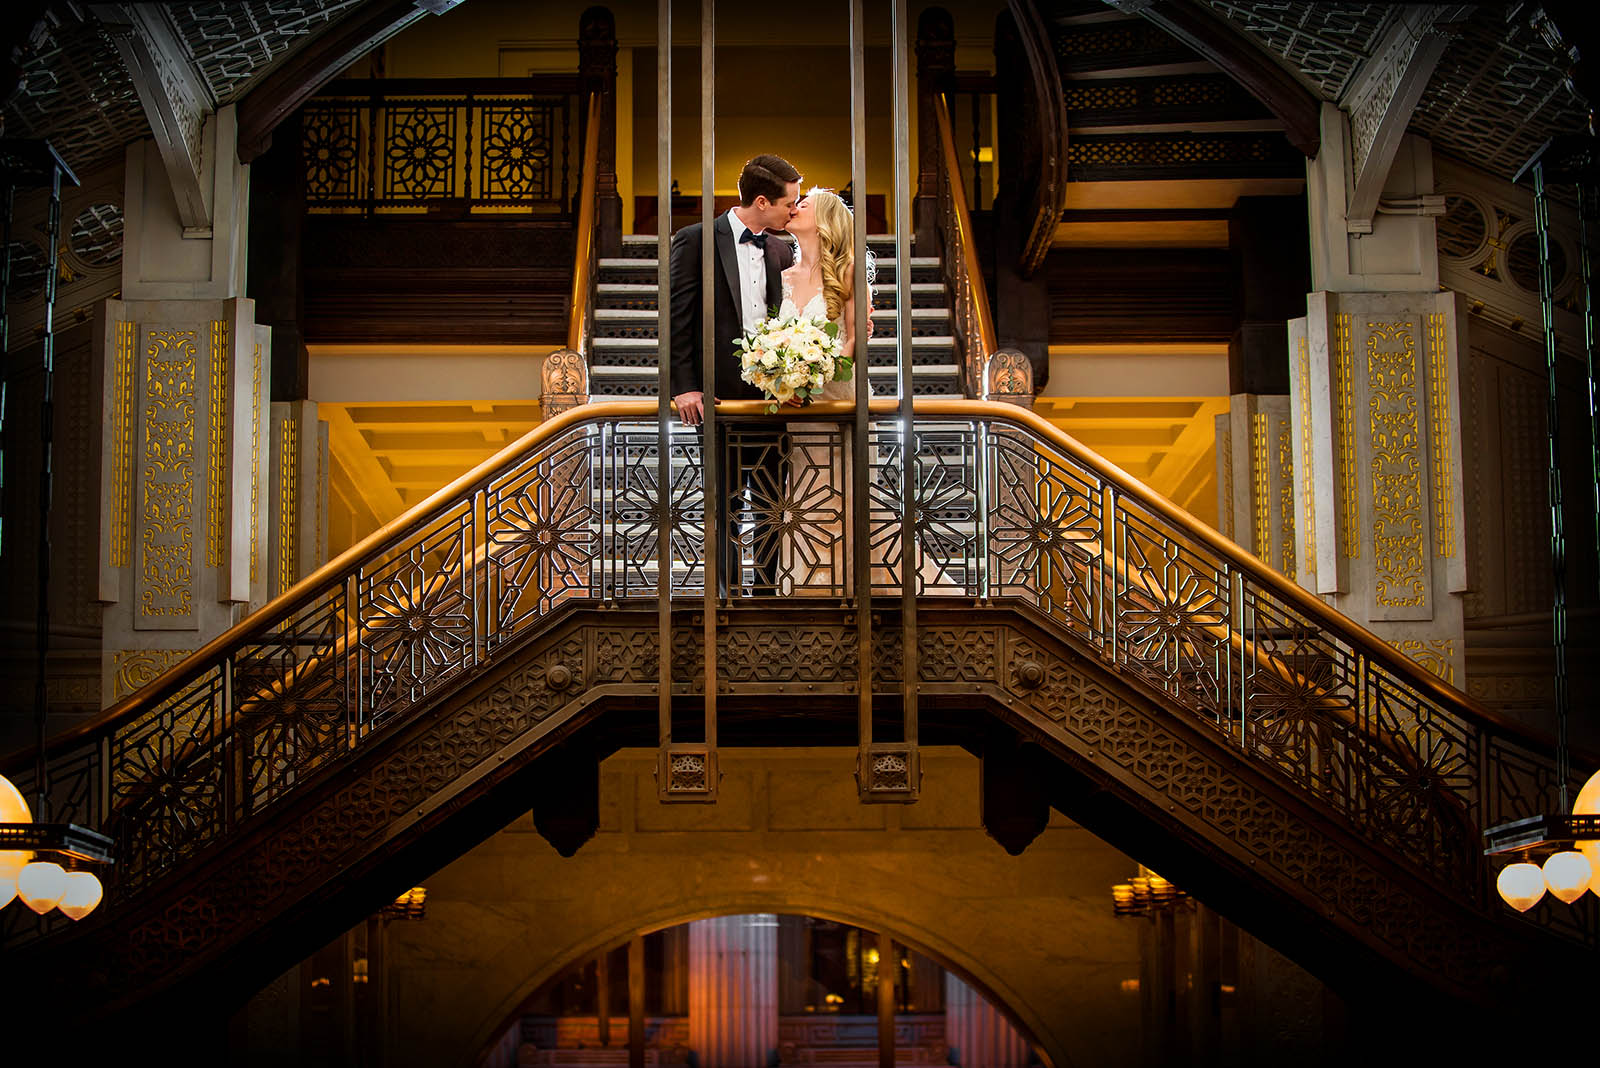 Oriel Staircase Colorful bride Groom Photo